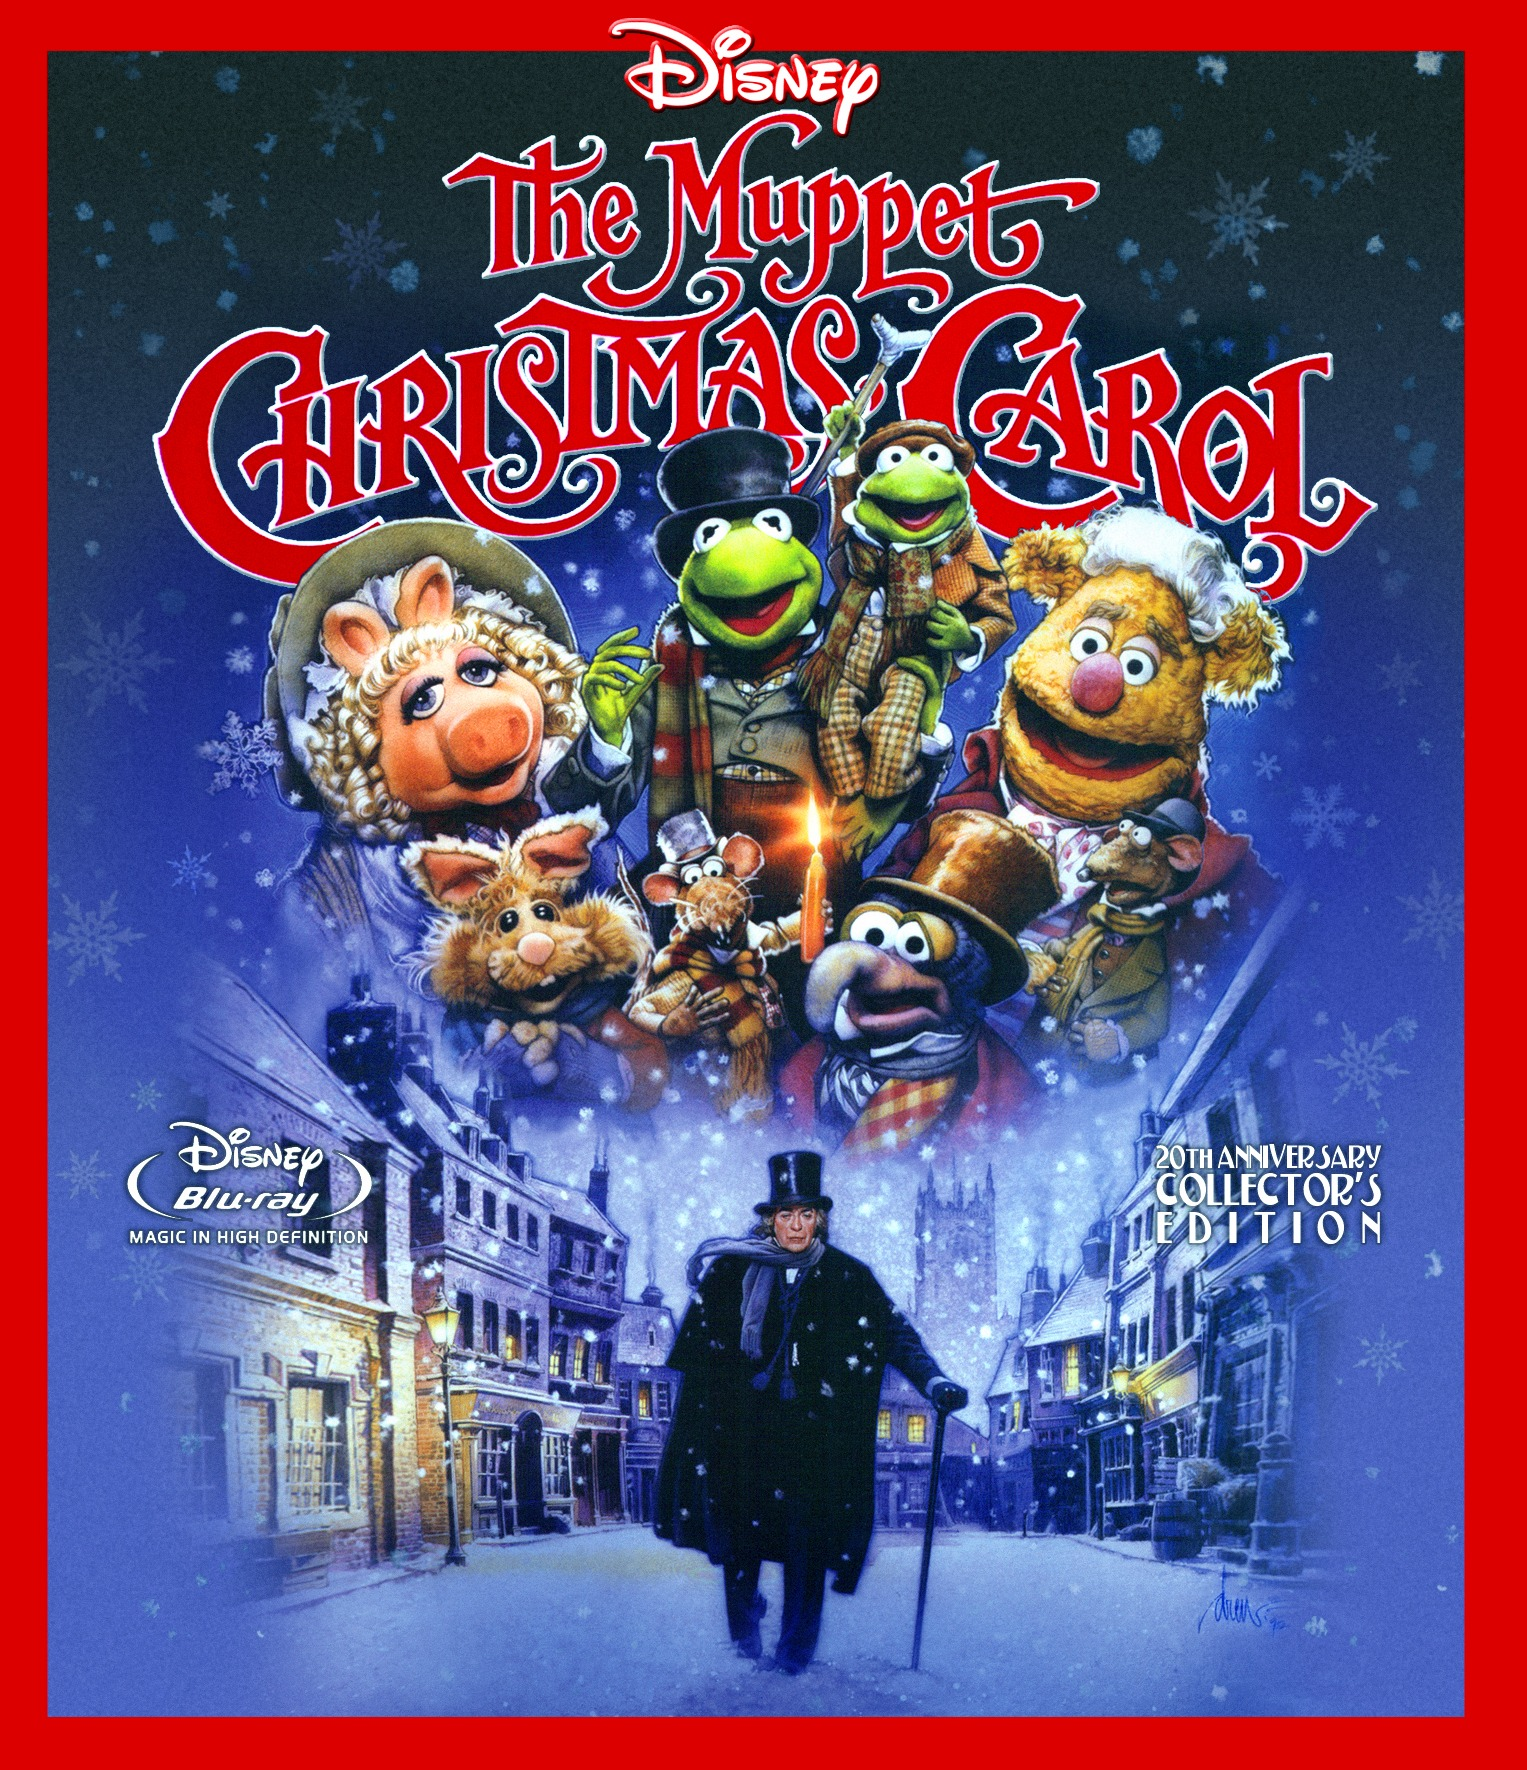 A Muppet Christmas Carol: Top 10 Modern Holiday Movies For The Whole Family